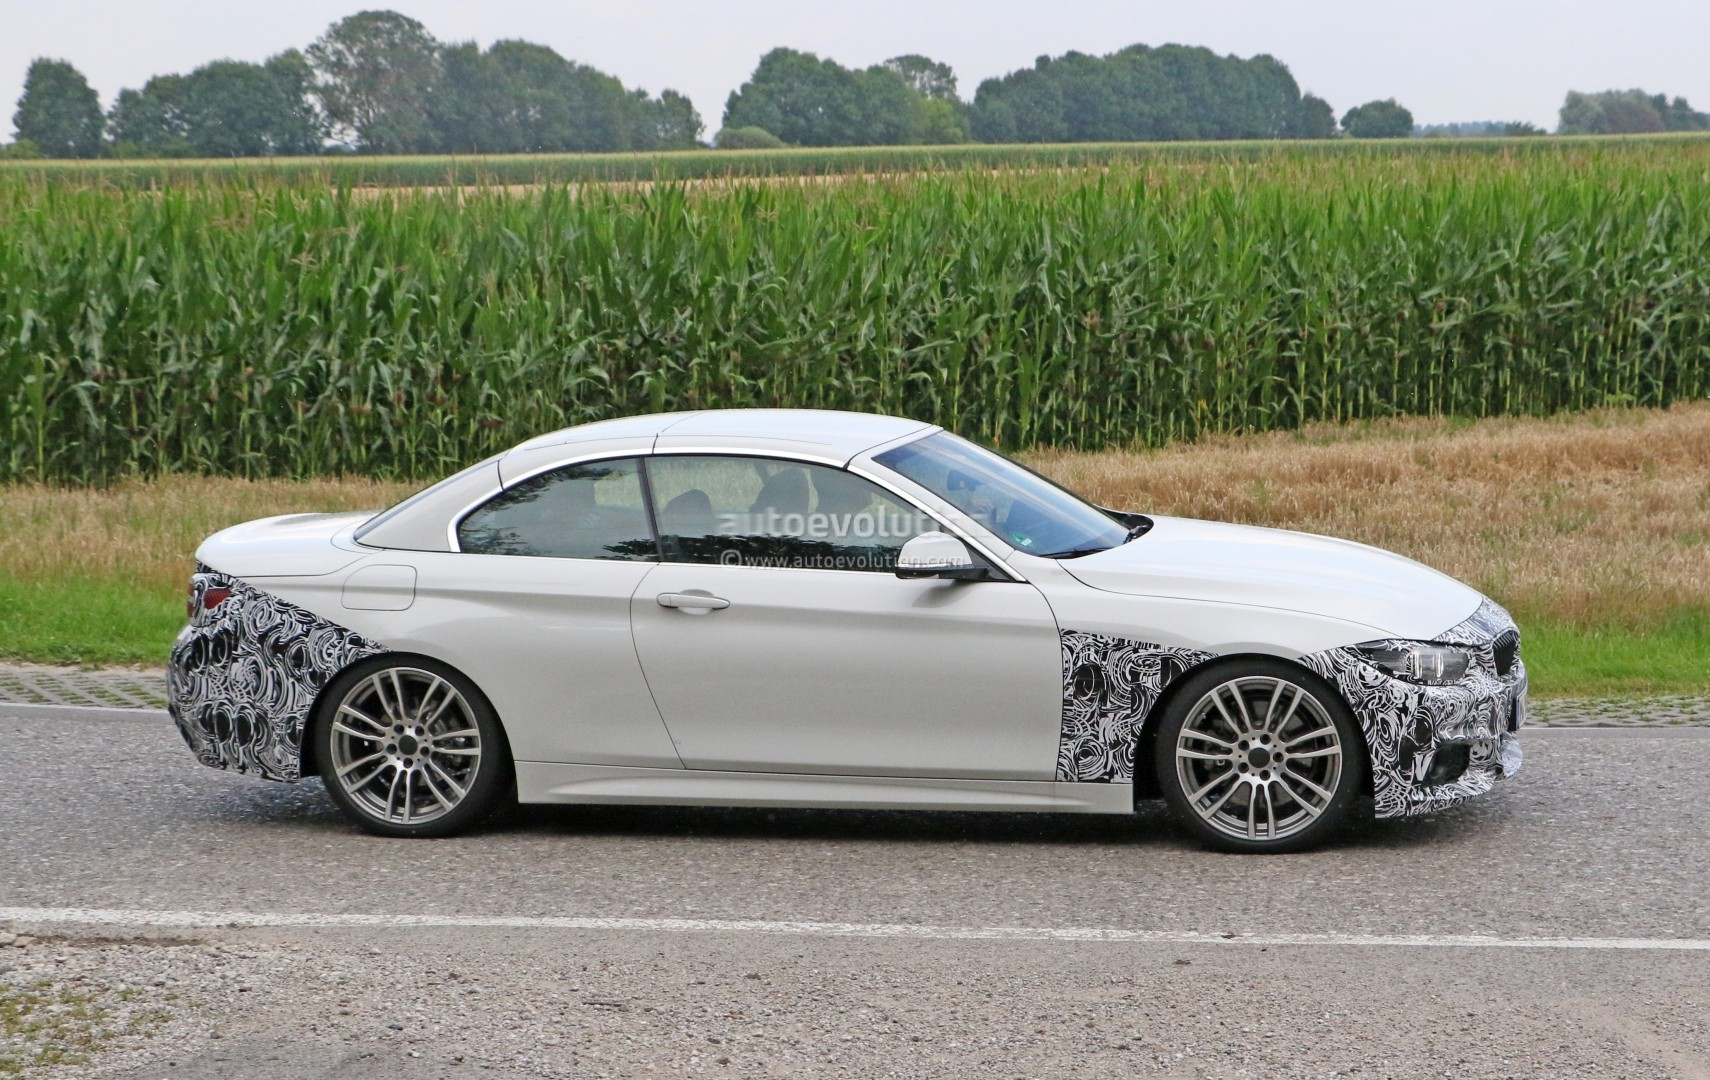 2018 bmw 4 series convertible makes spyshot debut ready to beat midlife crisis autoevolution. Black Bedroom Furniture Sets. Home Design Ideas